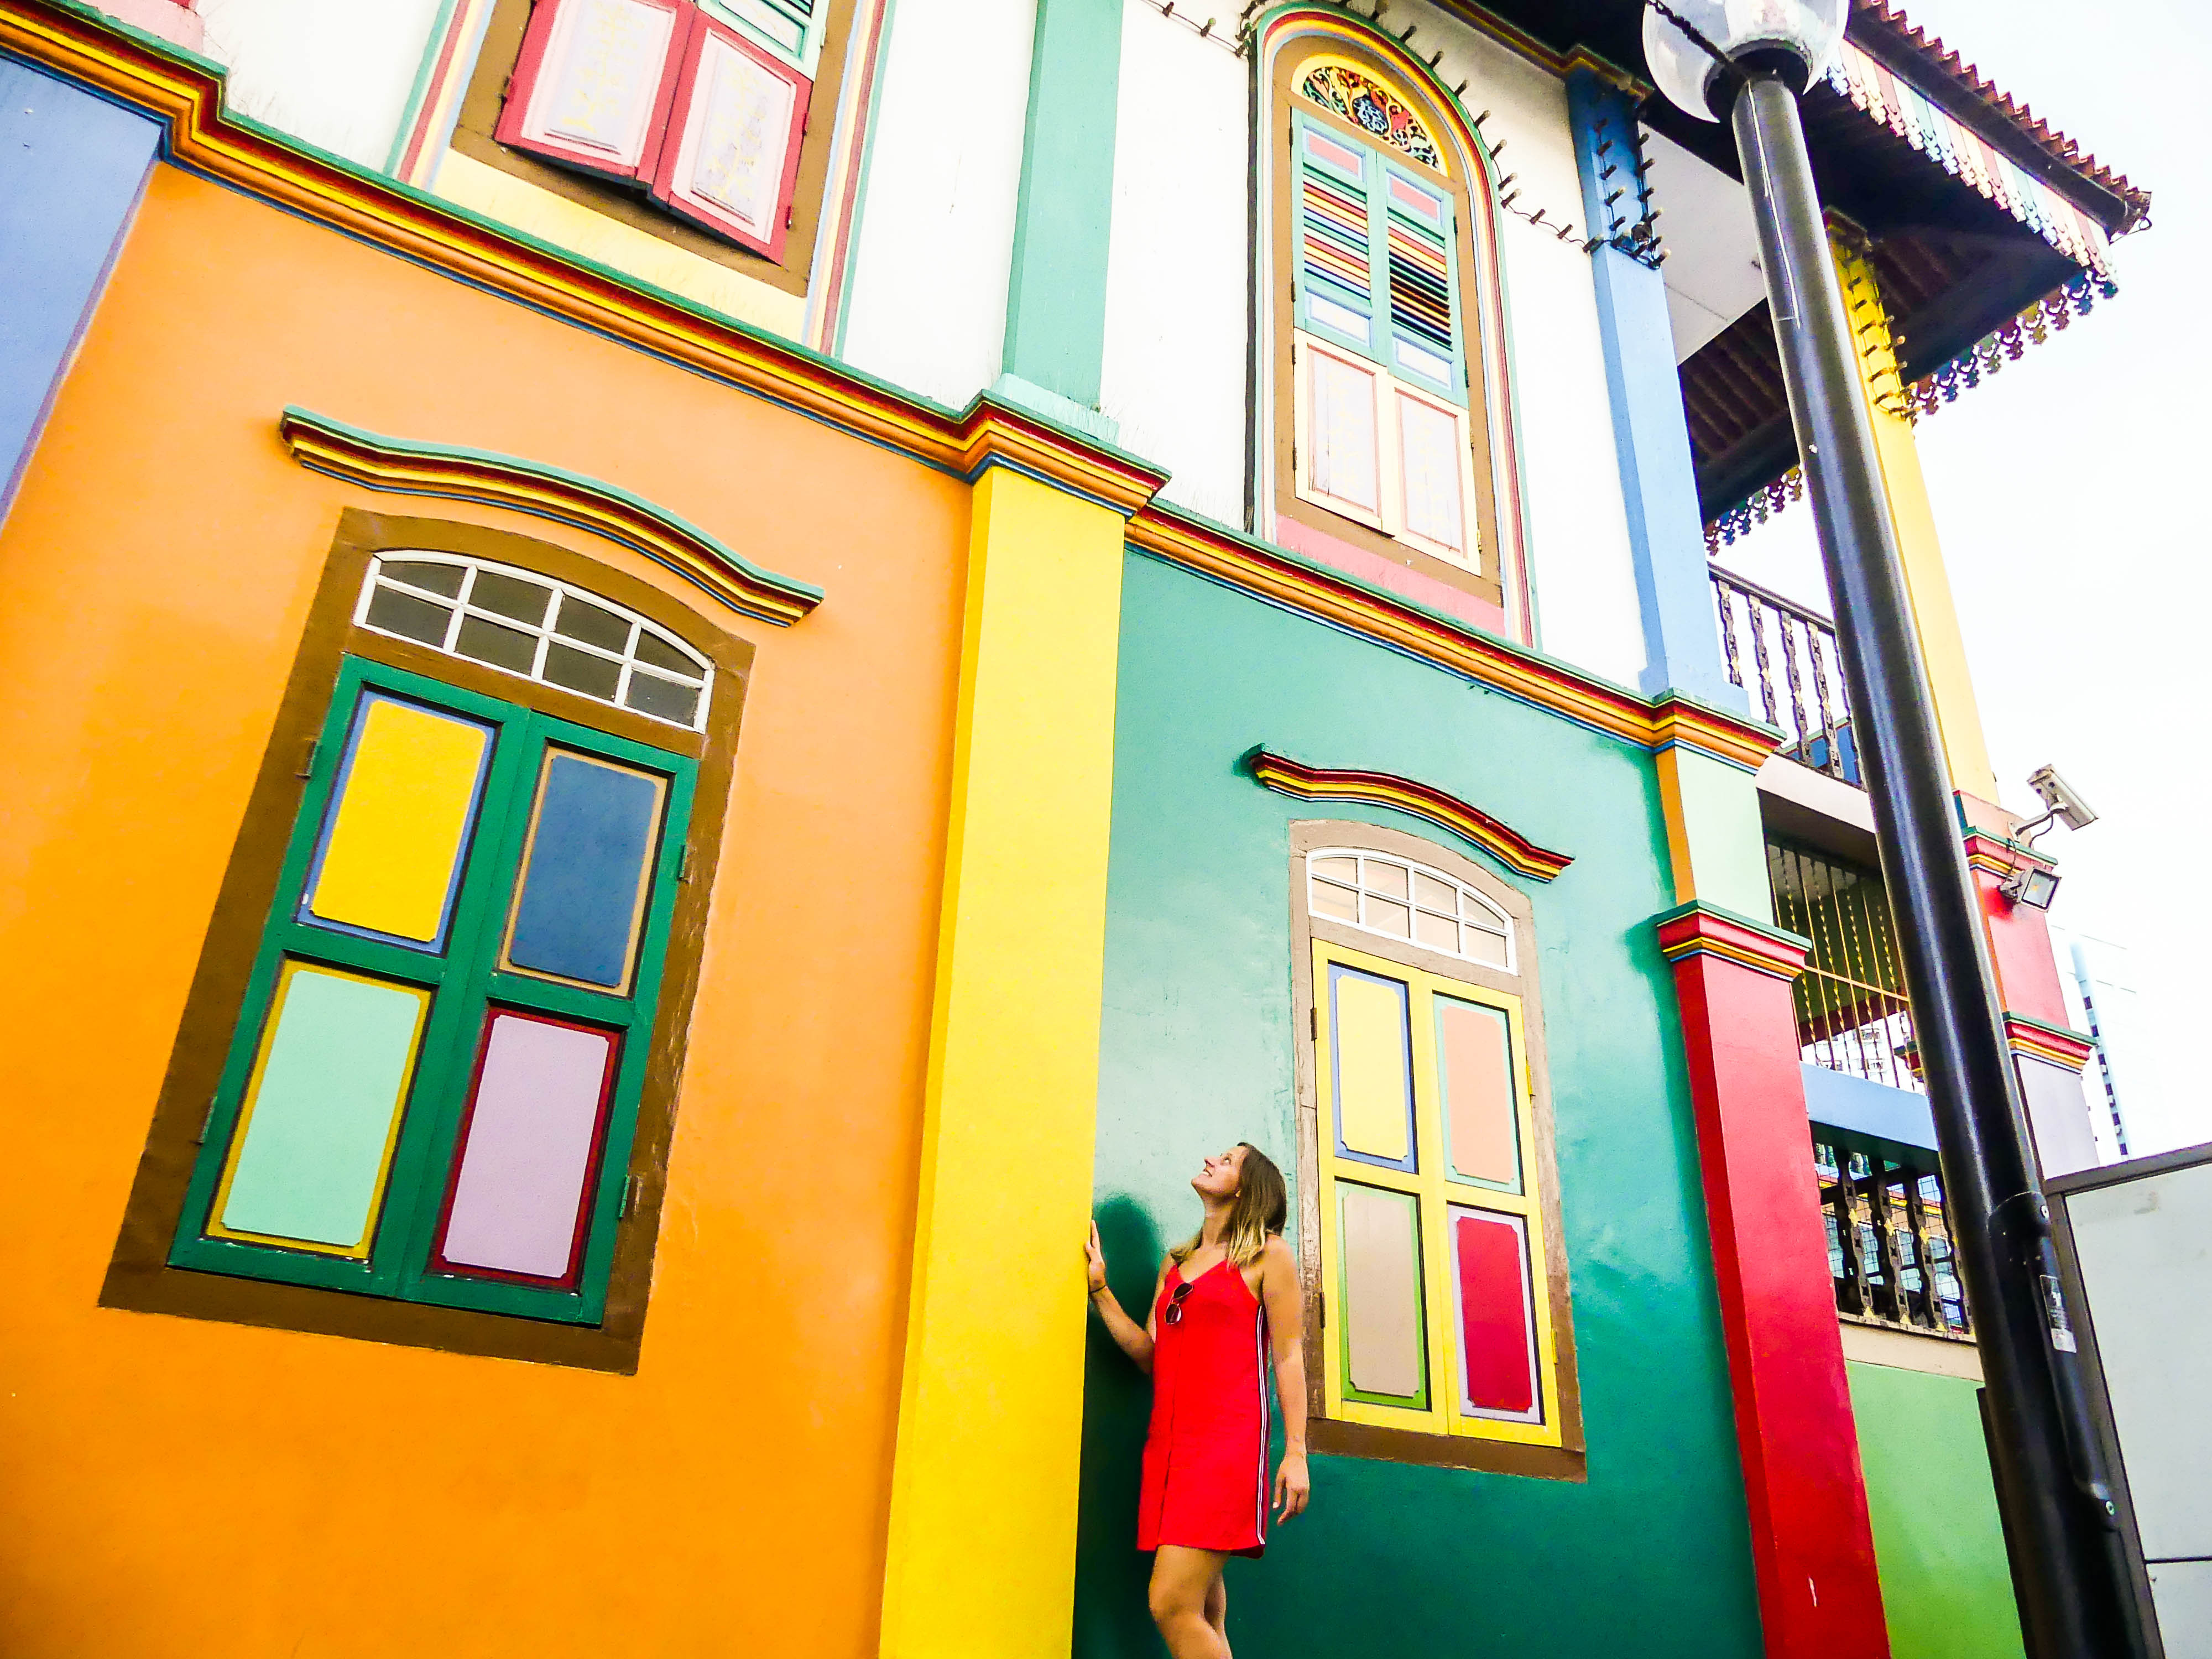 Little India buntes Haus